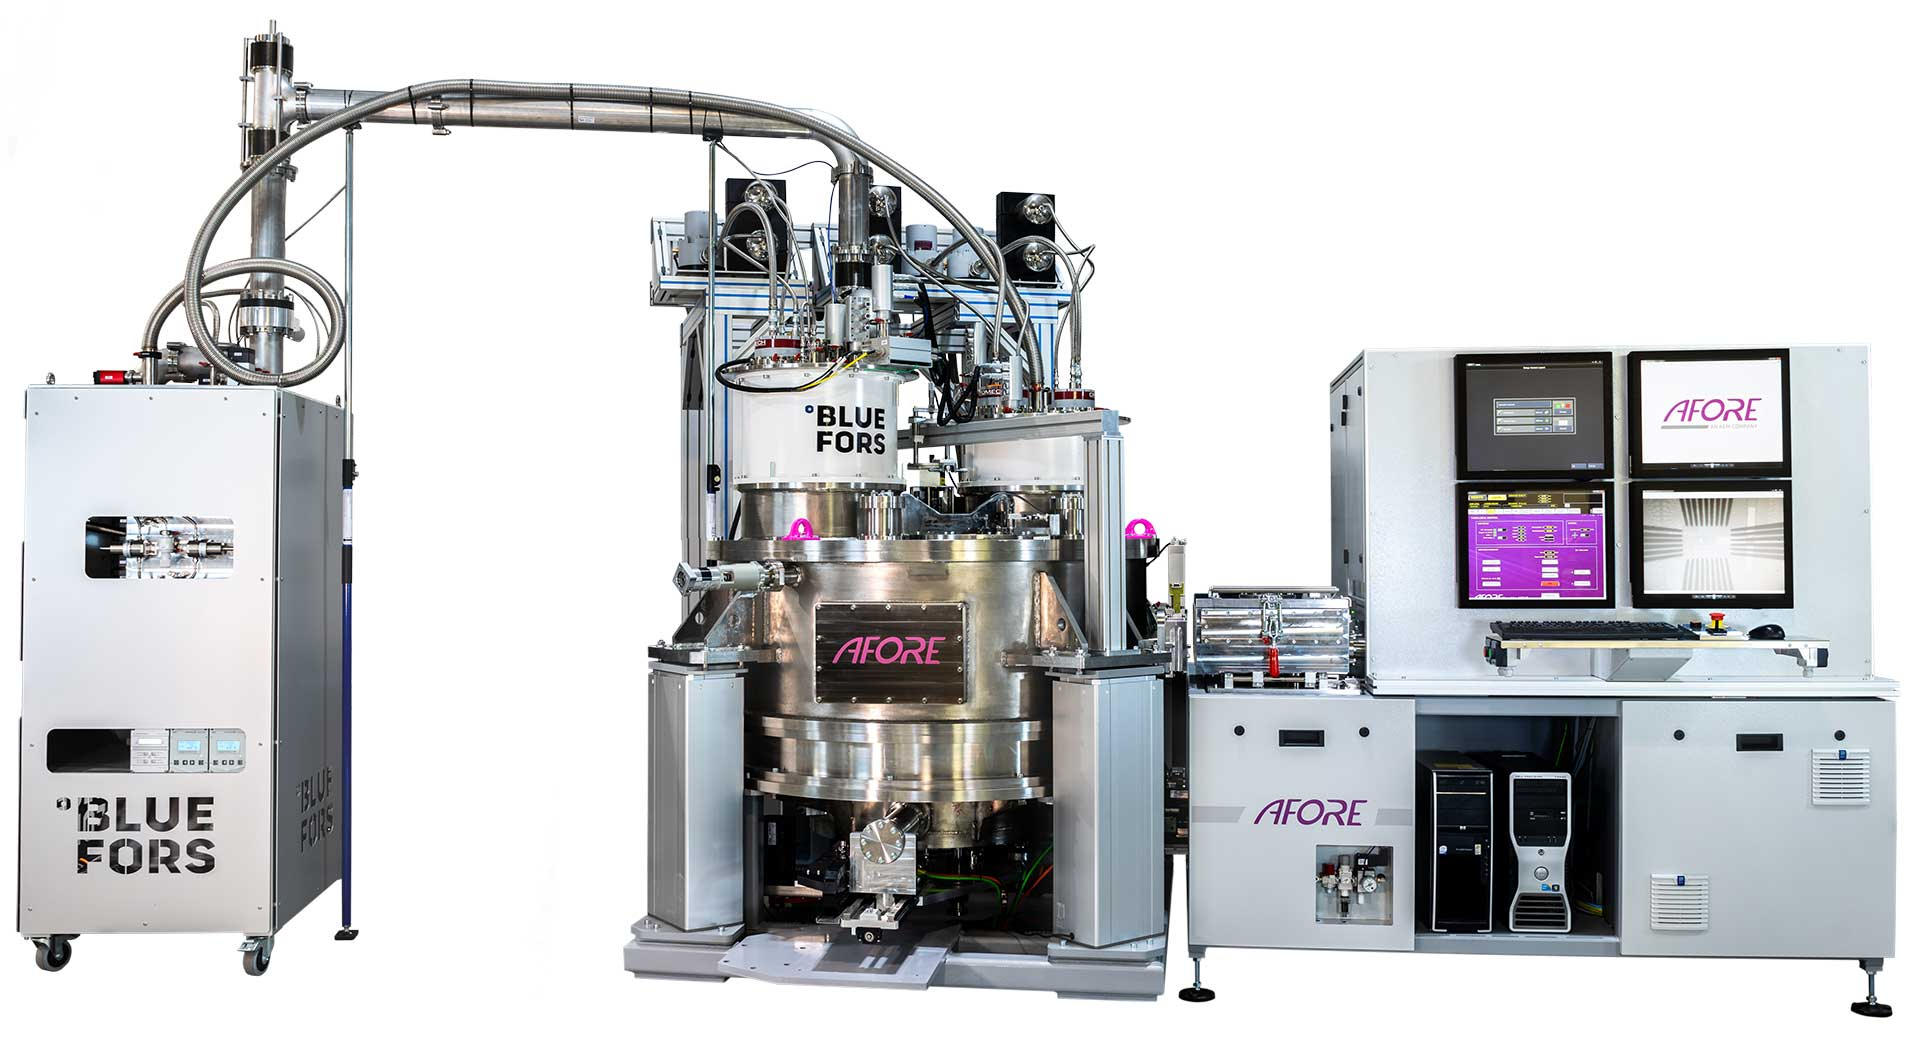 Bluefors-Afore-The-Cryogenic-Wafer-Prober-2019